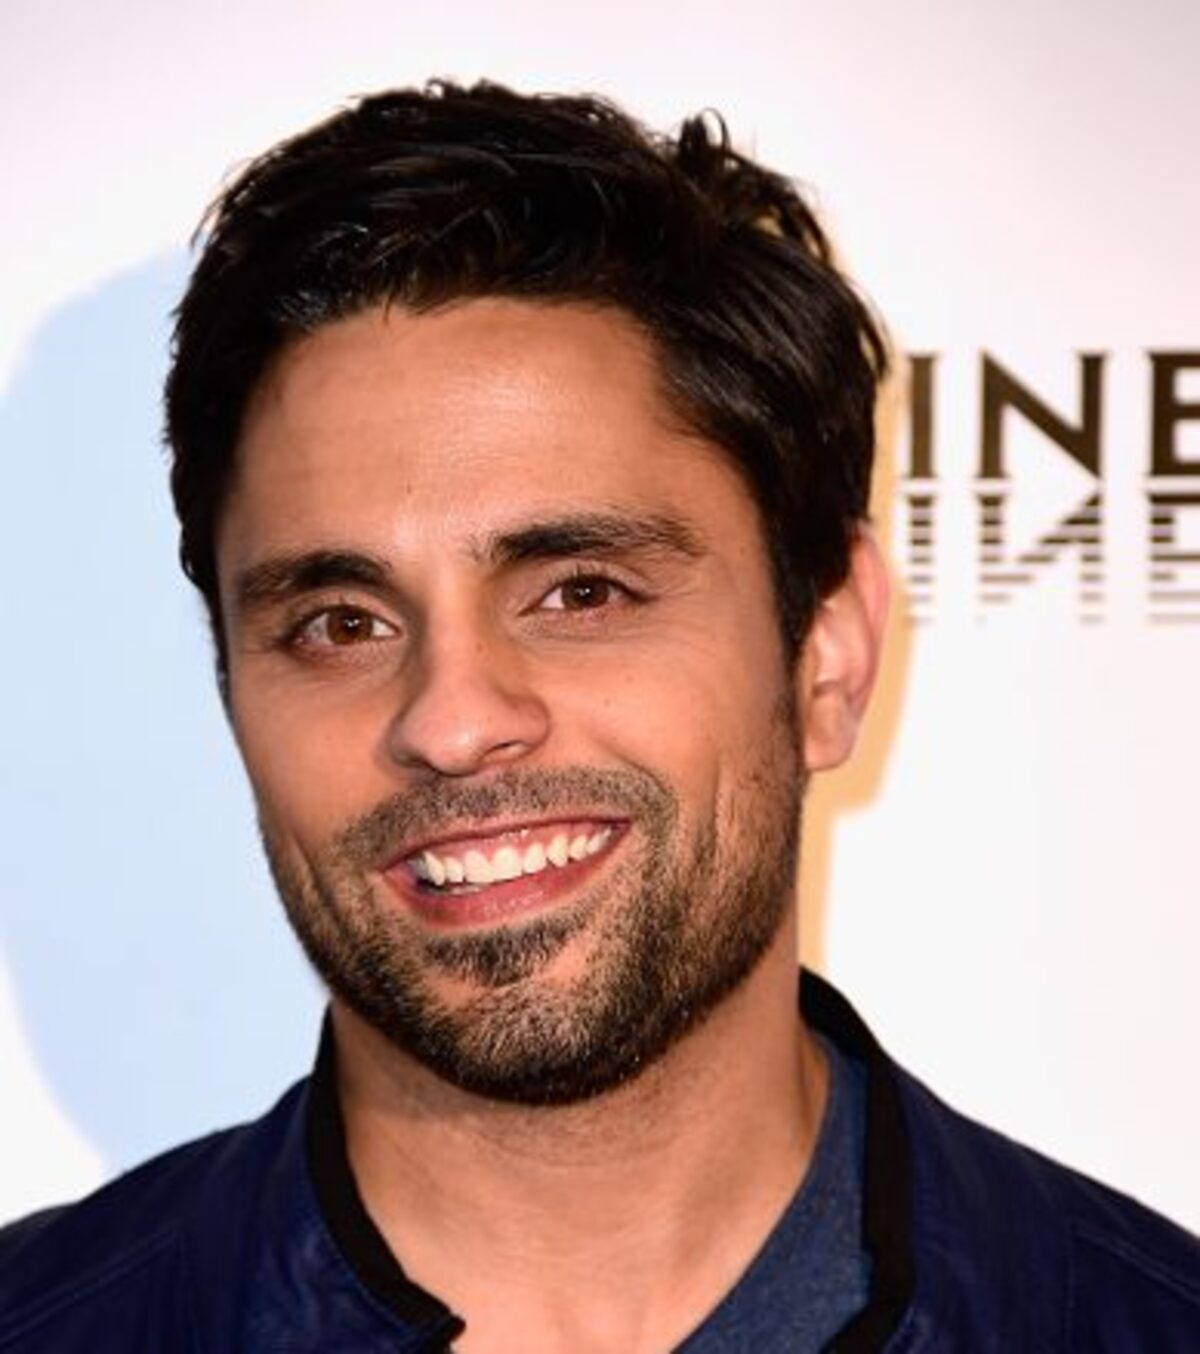 File:RayWilliamJohnson.jpg